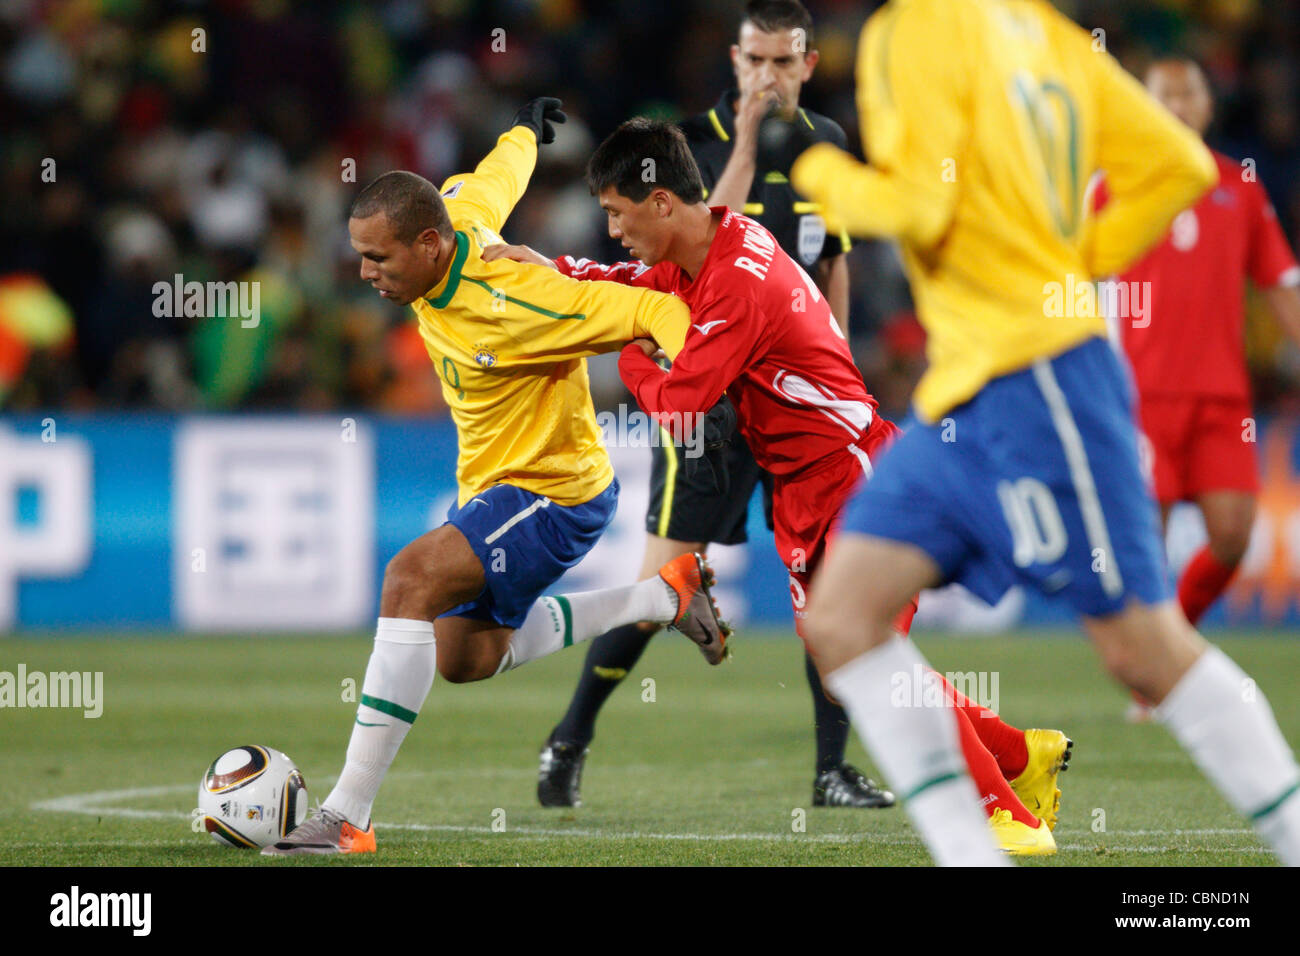 Luis Fabiano of Brazil (L) battles against Kwang Chon Ri of North Korea (R) during a FIFA World Cup match at Ellis - Stock Image